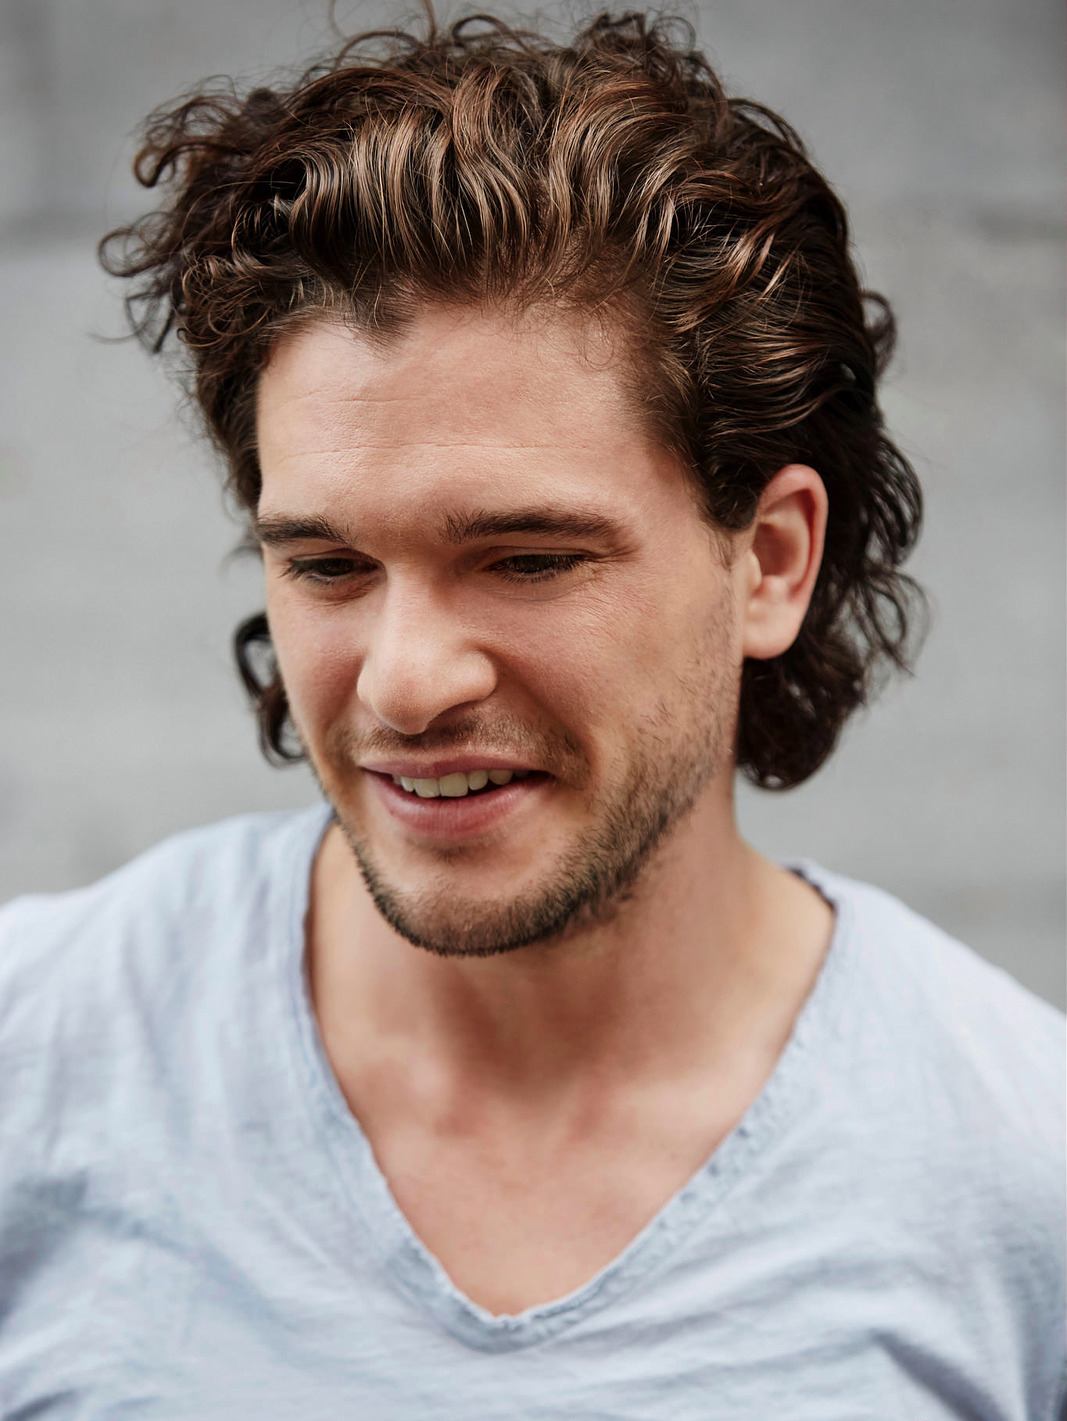 Kit Harington photo #761338